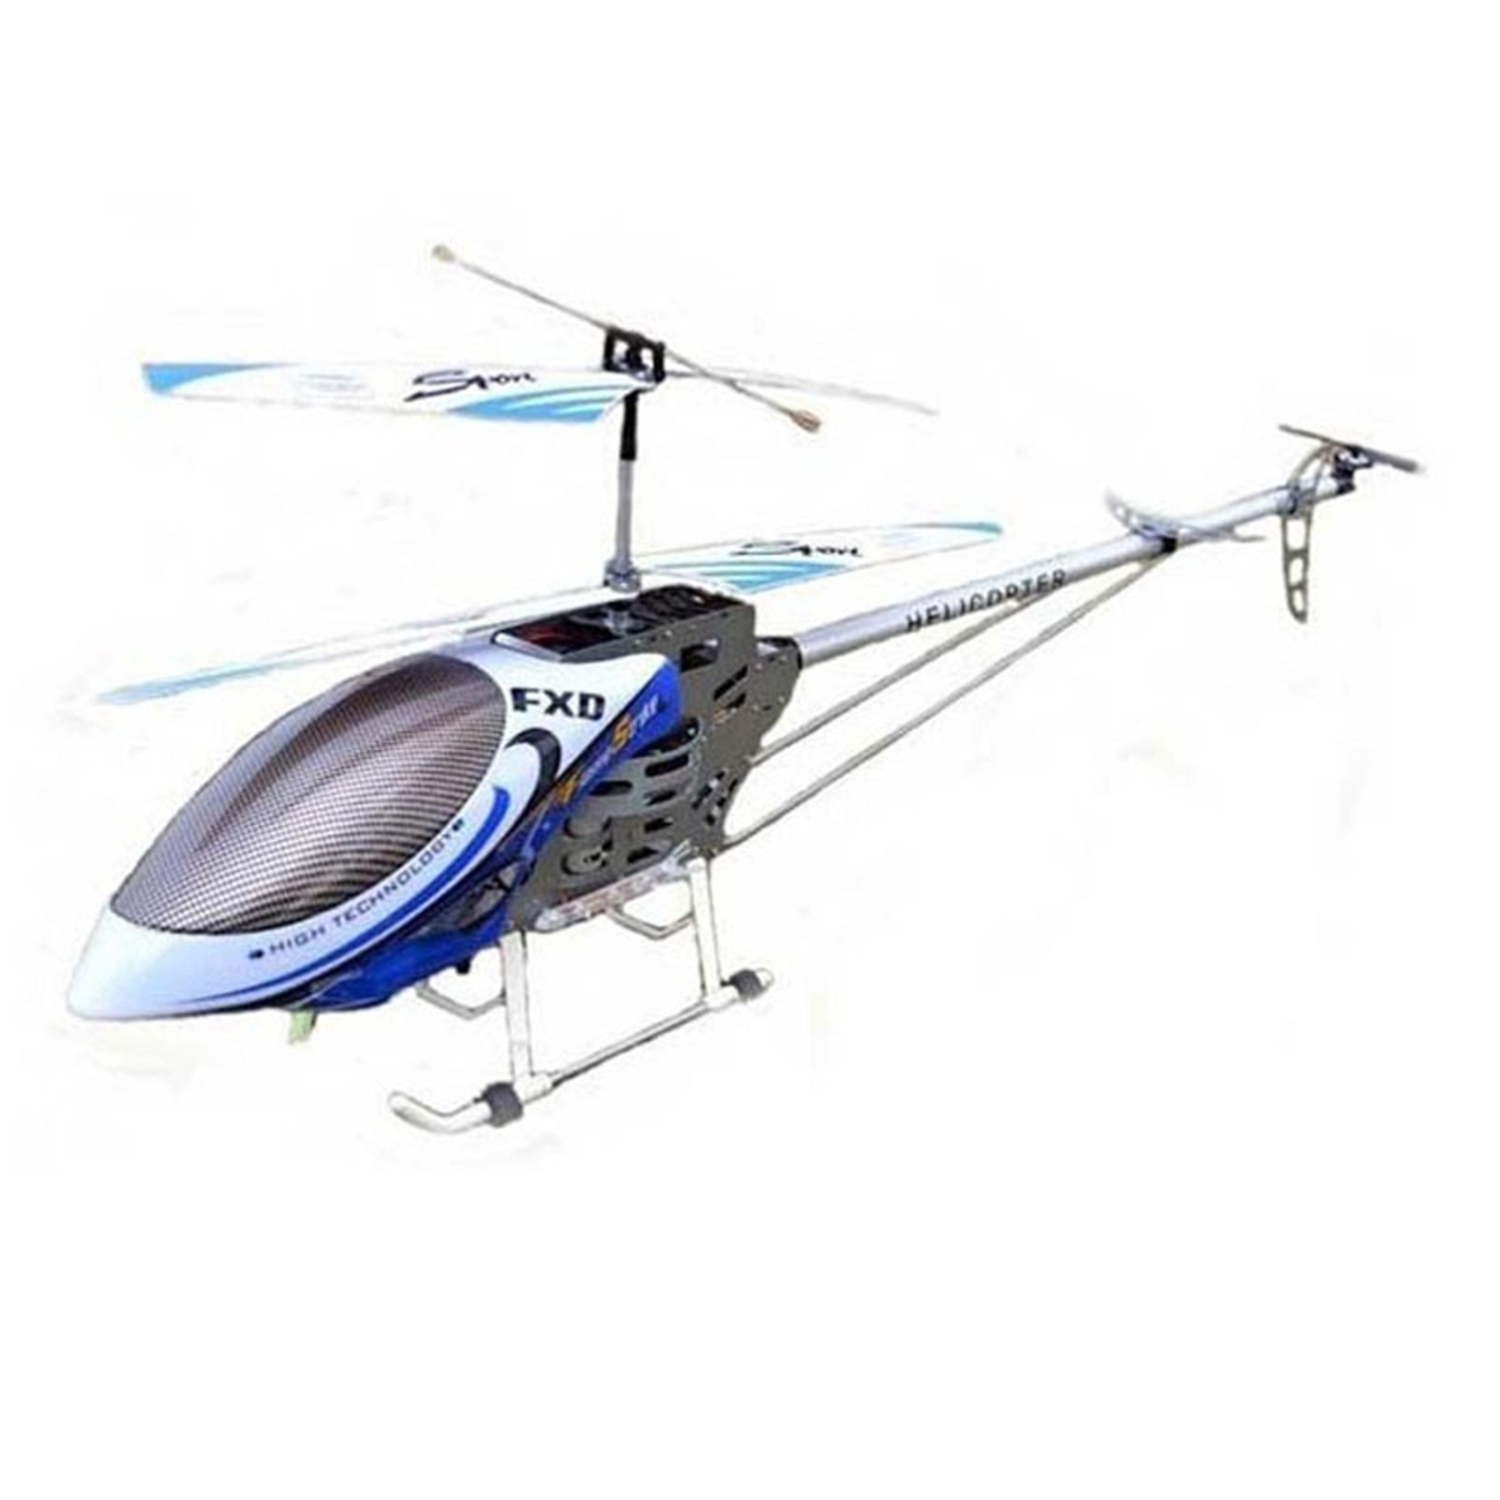 "49"" FXD 3.5 Channel Gyroscope Metal Frame RC Helicopter with LED lights! Blue (Gift Idea) by"